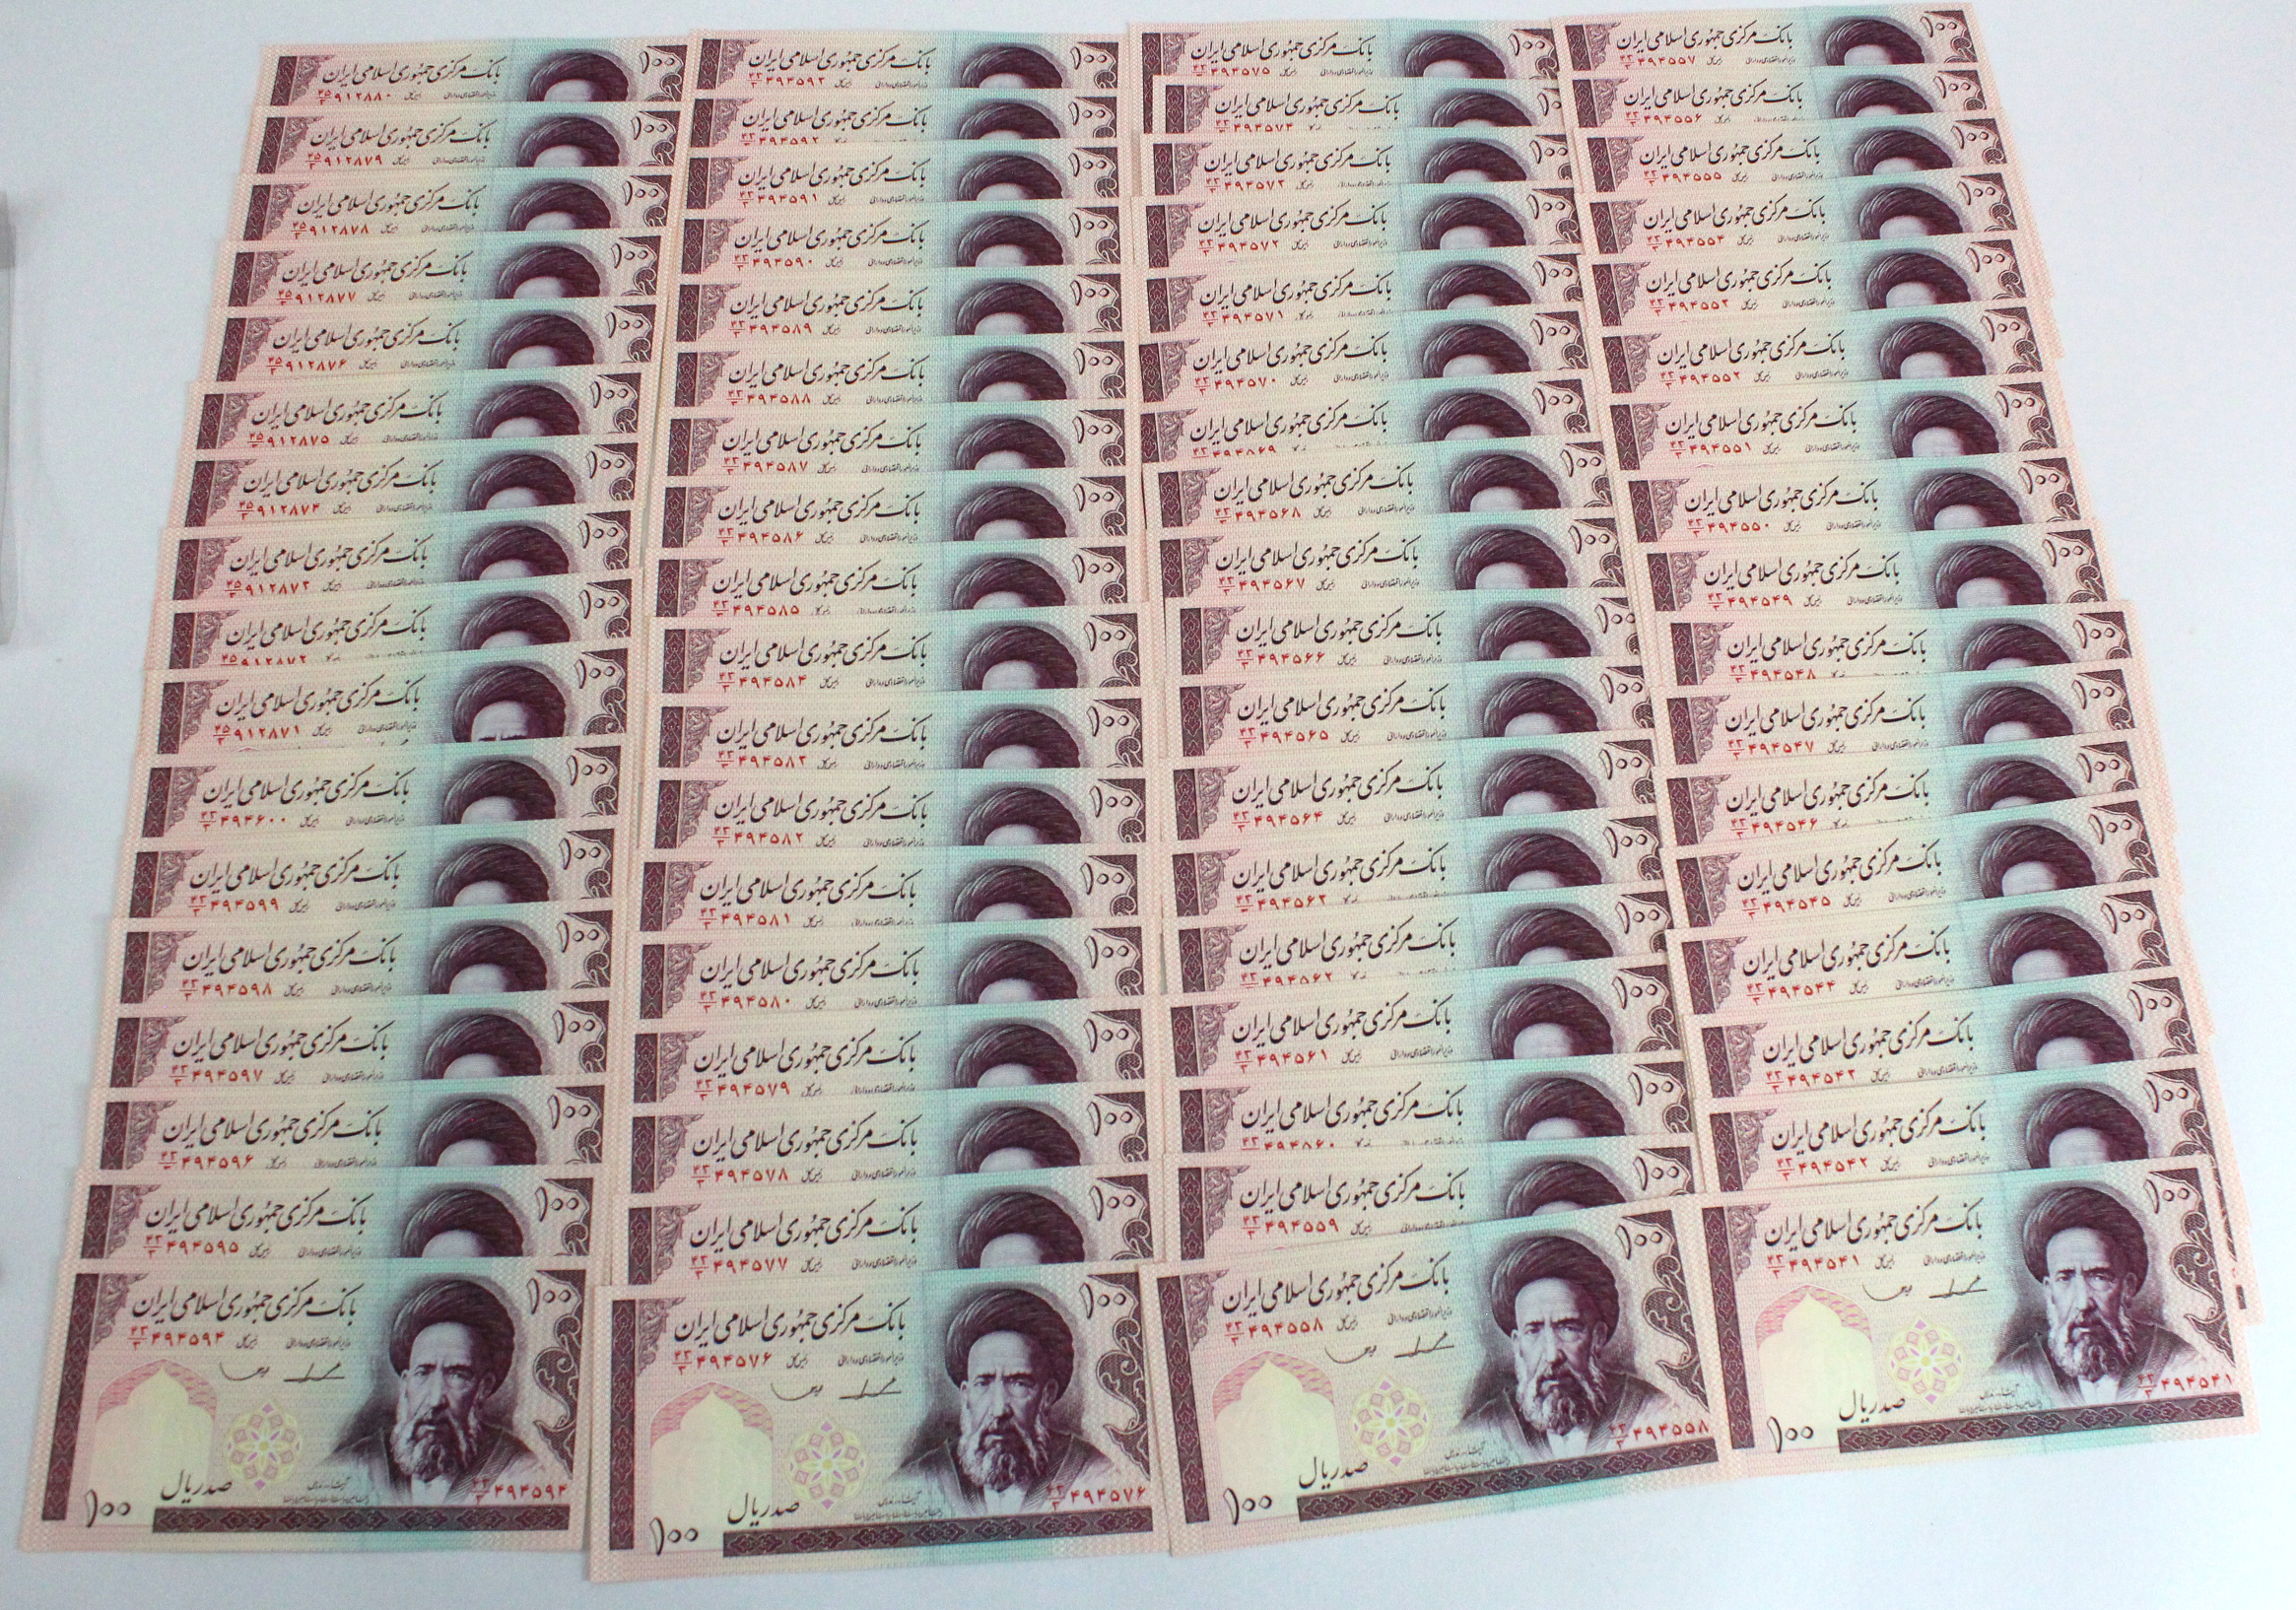 Iran (180), 200 Rials (80) issued 1982, a consecutively numbered run with Arms watermark (TBB B268b,